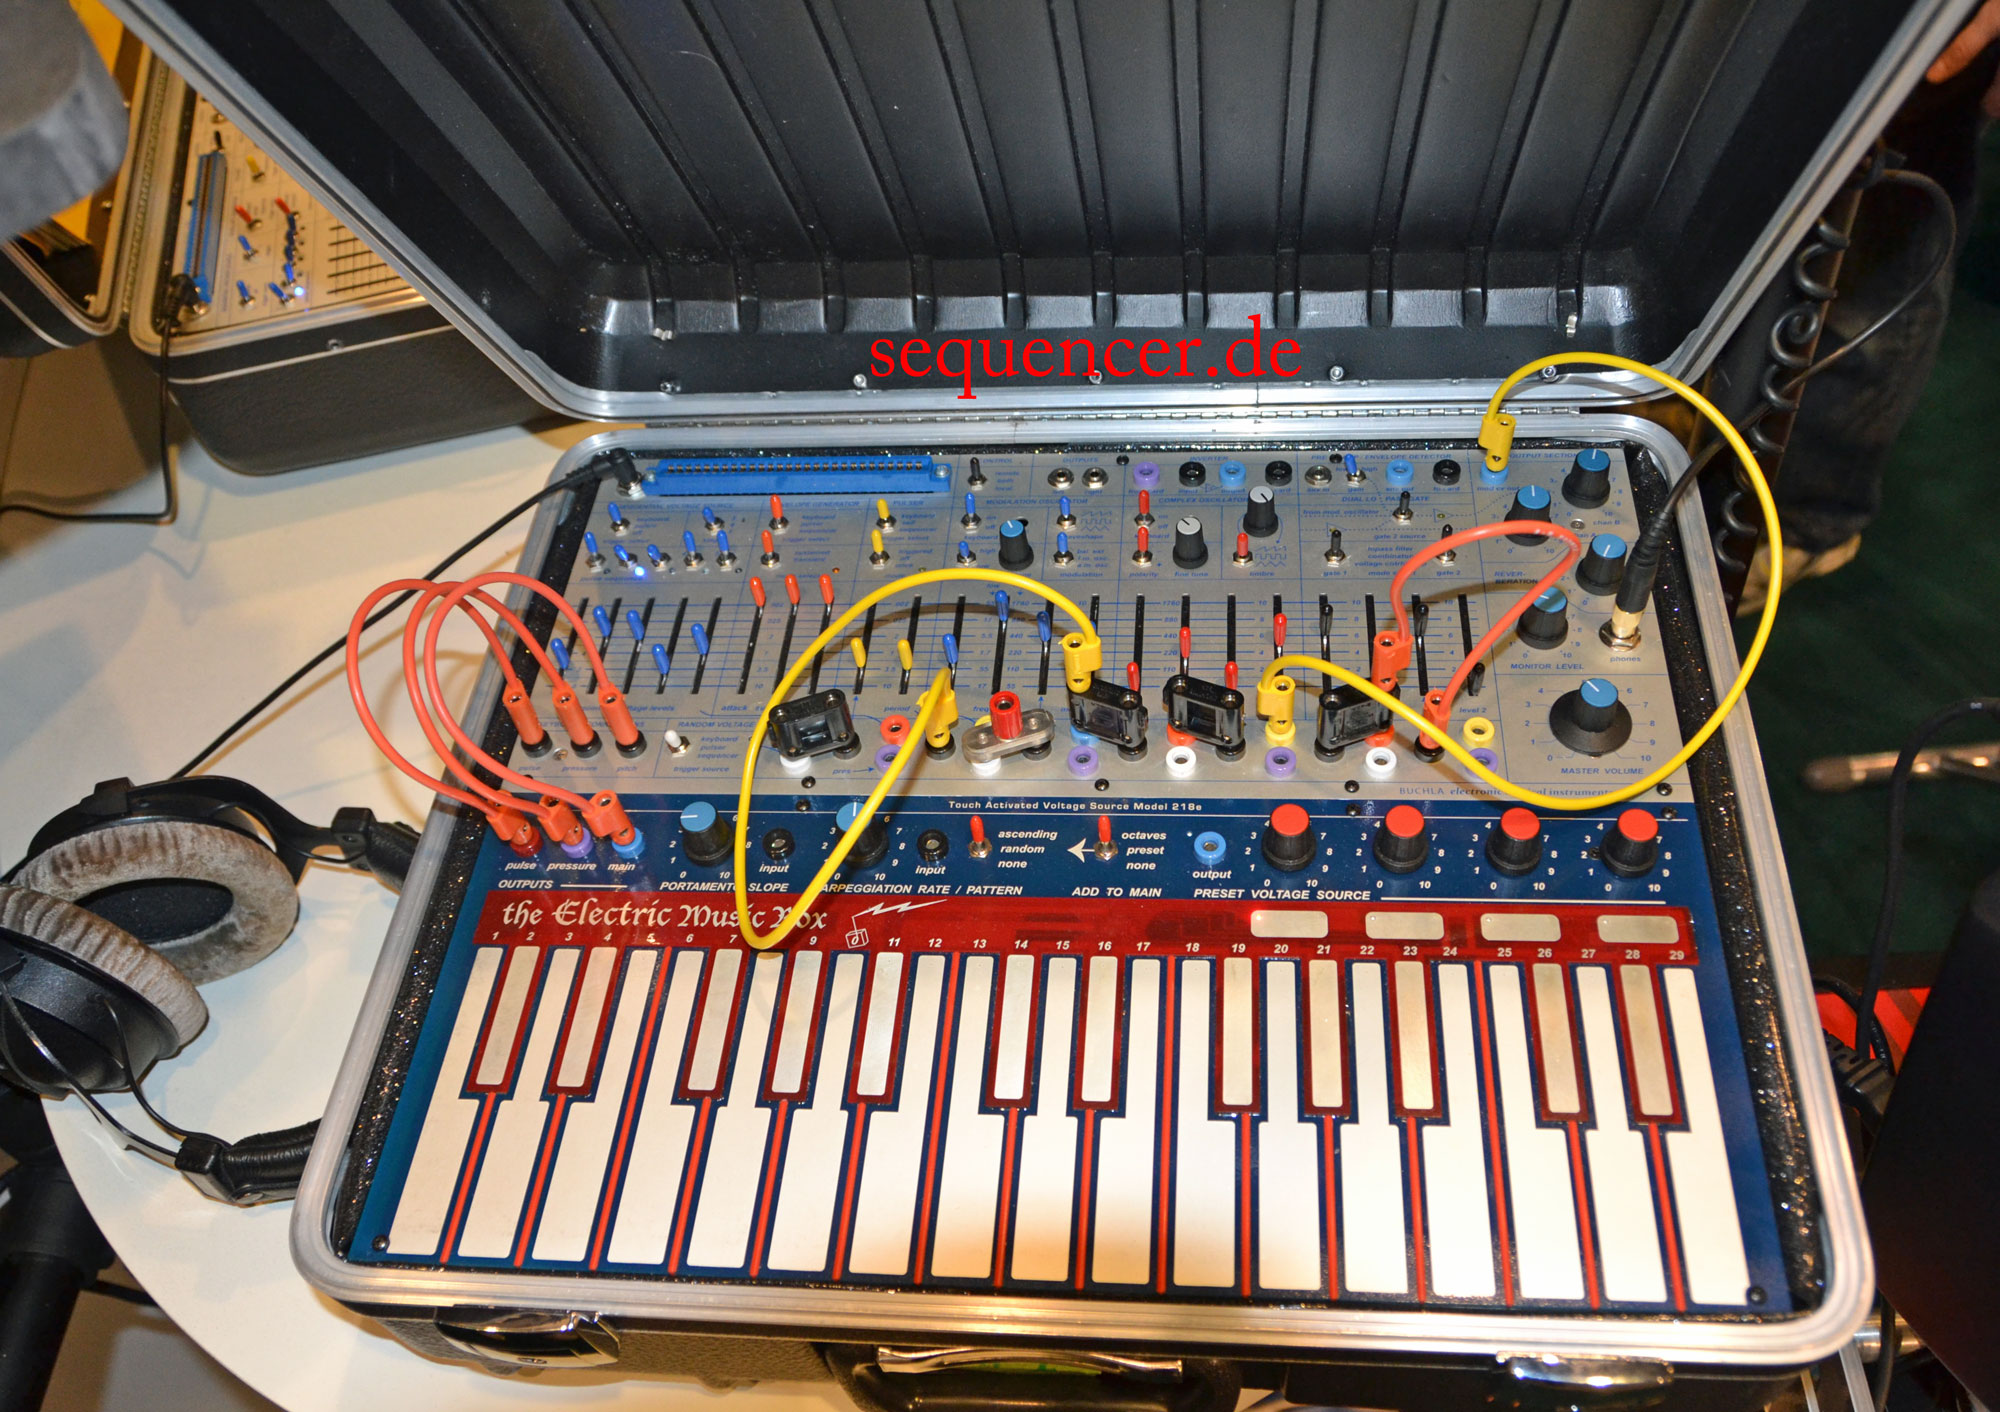 buchla new music easel electric music box 2012 modular synthesizer step sequencer. Black Bedroom Furniture Sets. Home Design Ideas